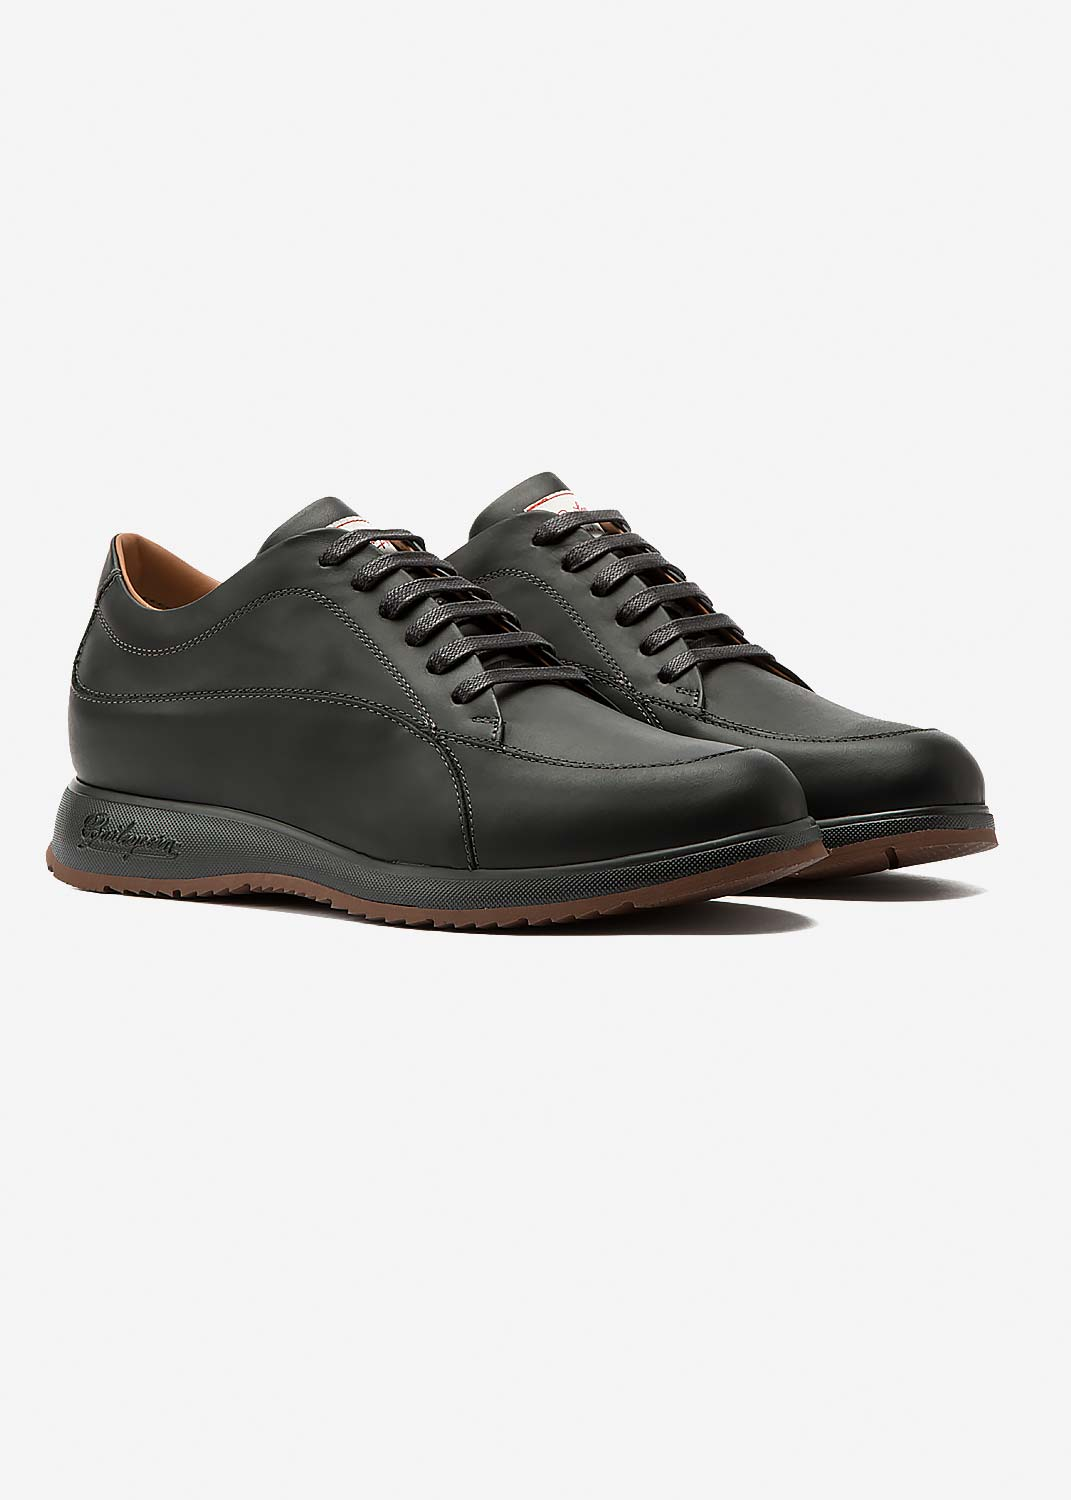 New Classic Black Leather